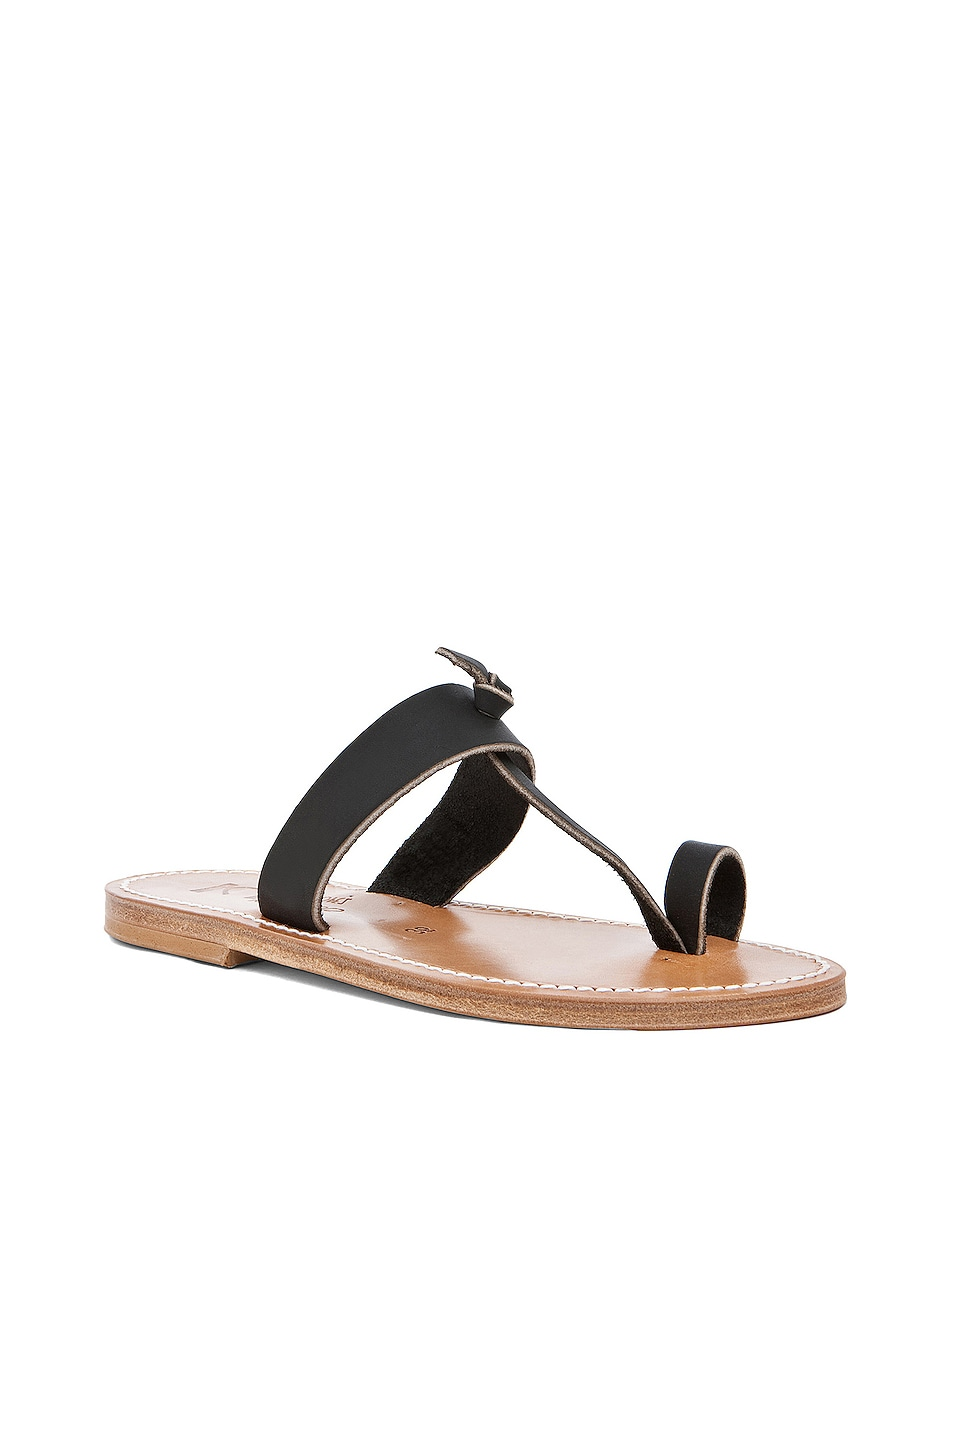 Image 2 of K Jacques Ganges Slip On Sandals in Black